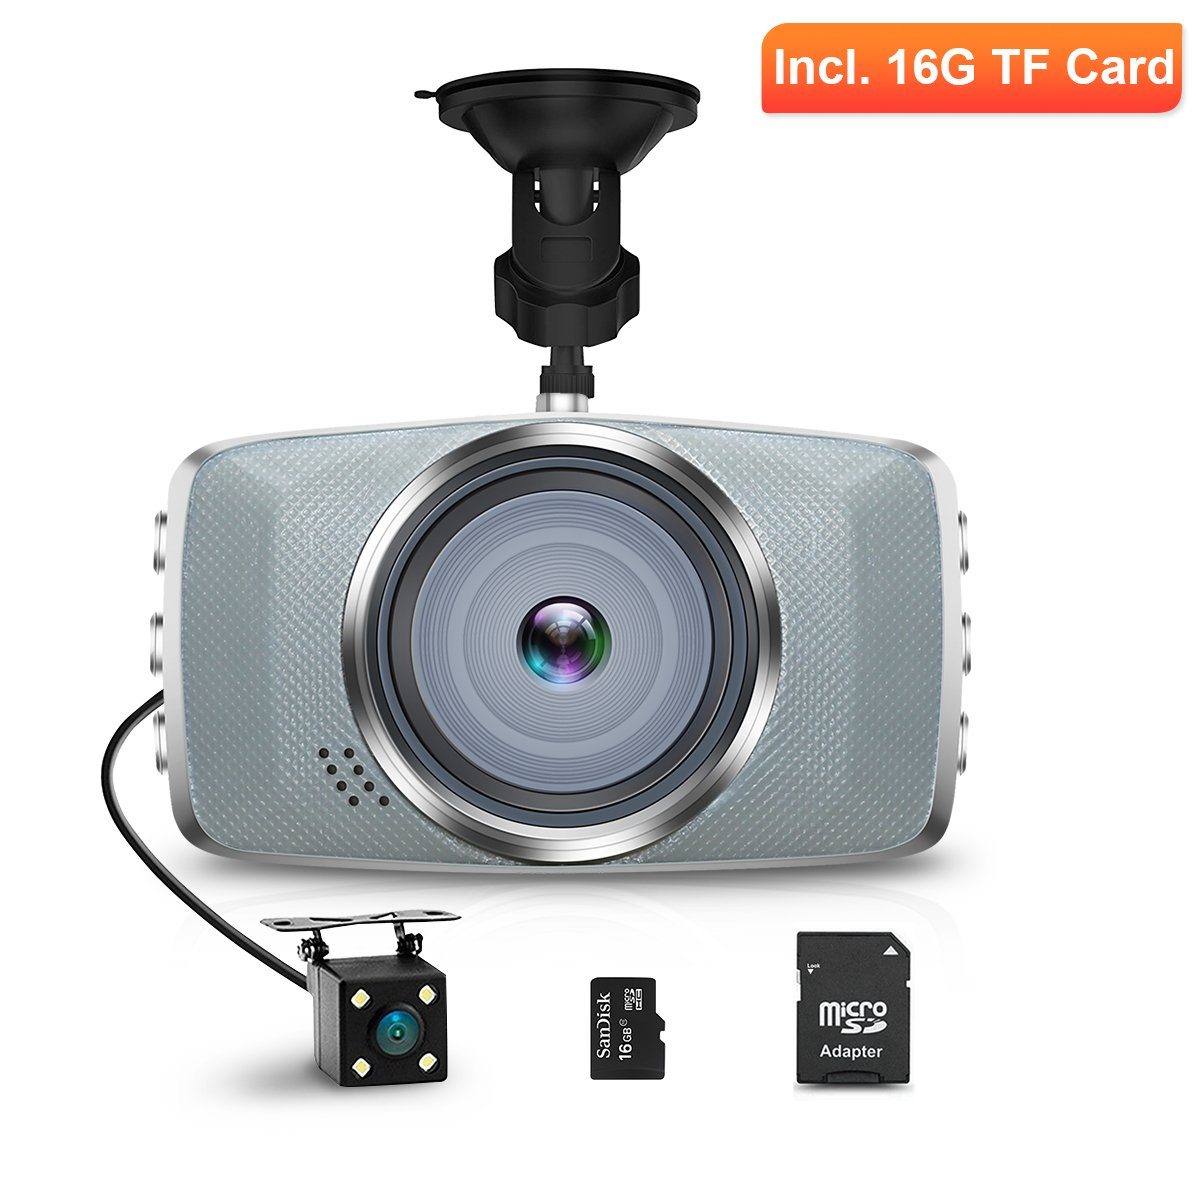 AIMTOM ND-7 Full HD 1080P Car Camcorder, 3 Inch LCD Screen Dashboard Camera, Vehicle Driving Video Recorder, Front and Rear View DVR, Dual Lens Mirror Dash Cam, 16G Micro SD TF Memory Card Included AMN-ND-7SD